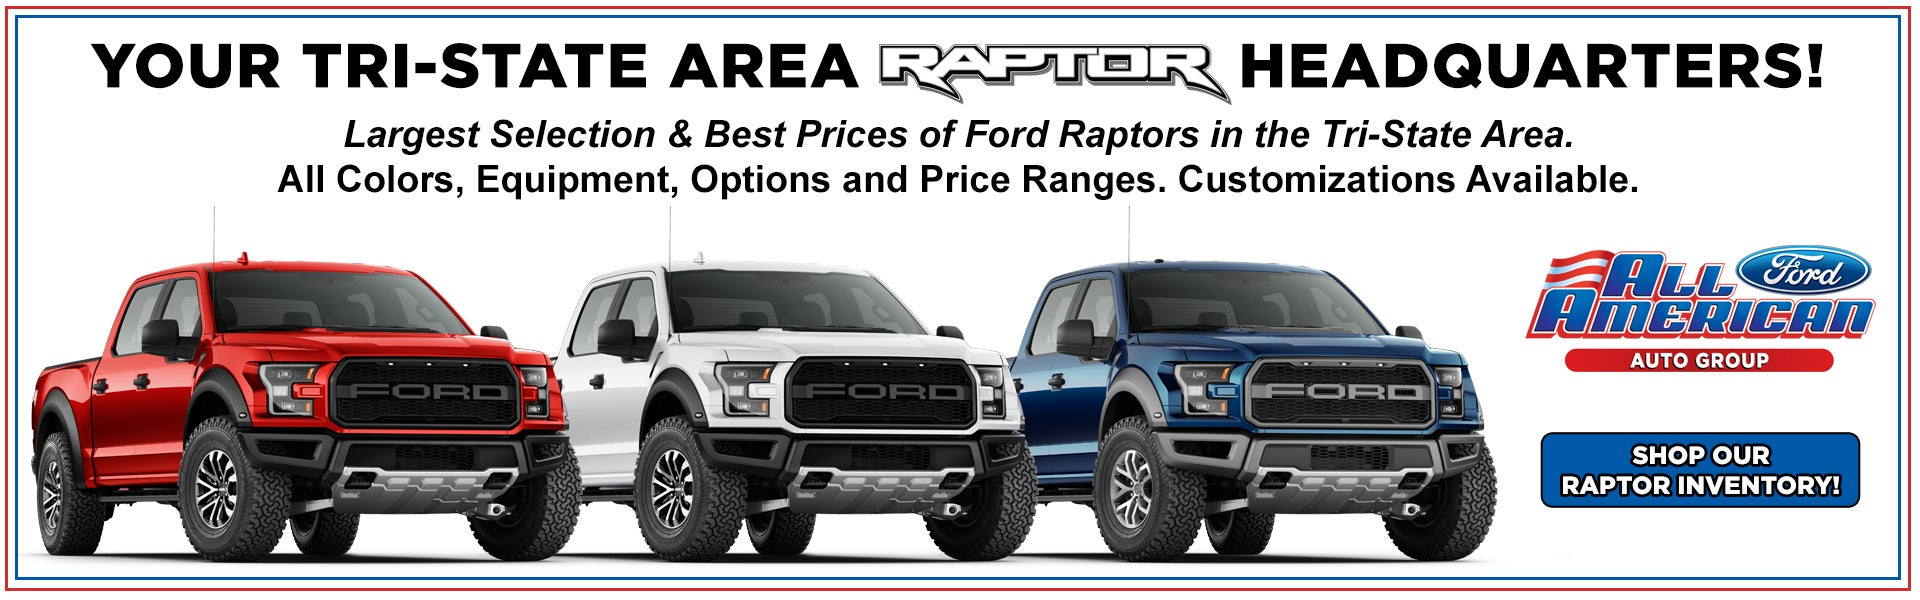 All American Ford of Hackensack | Hackensack NJ Ford Dealer